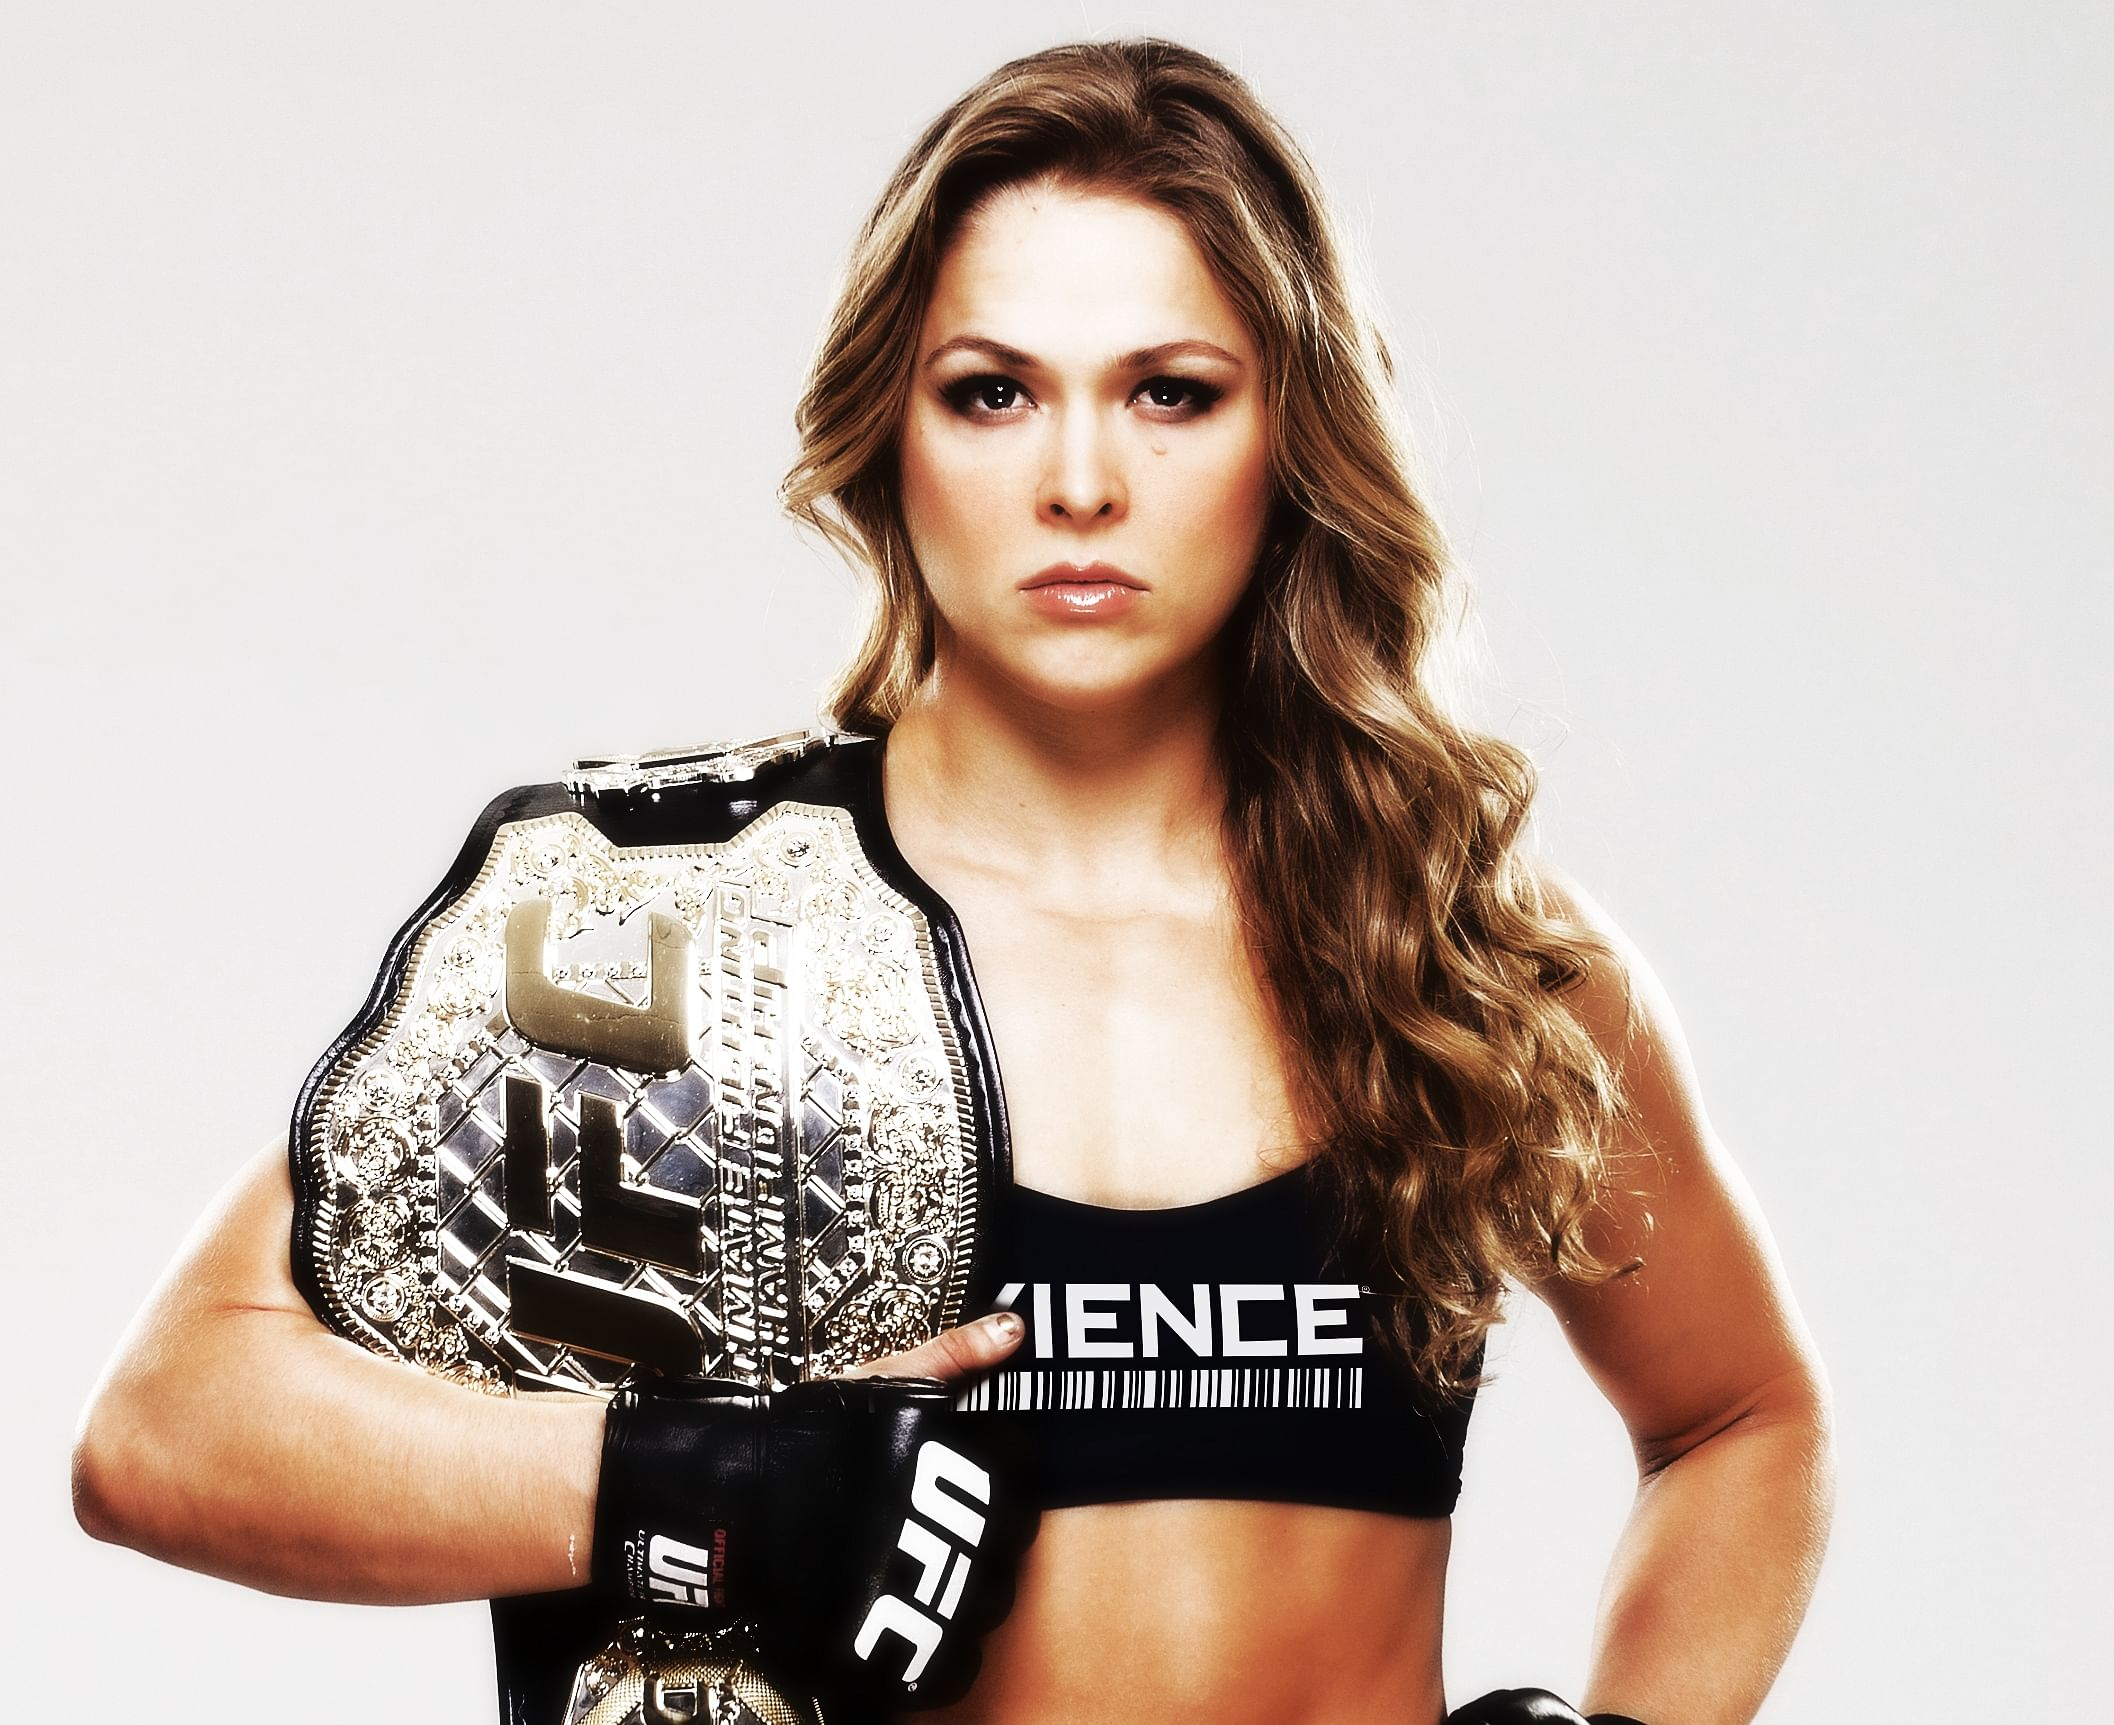 Update on Ronda Rousey, Renee Young, Vince McMahon on WresteMania 32